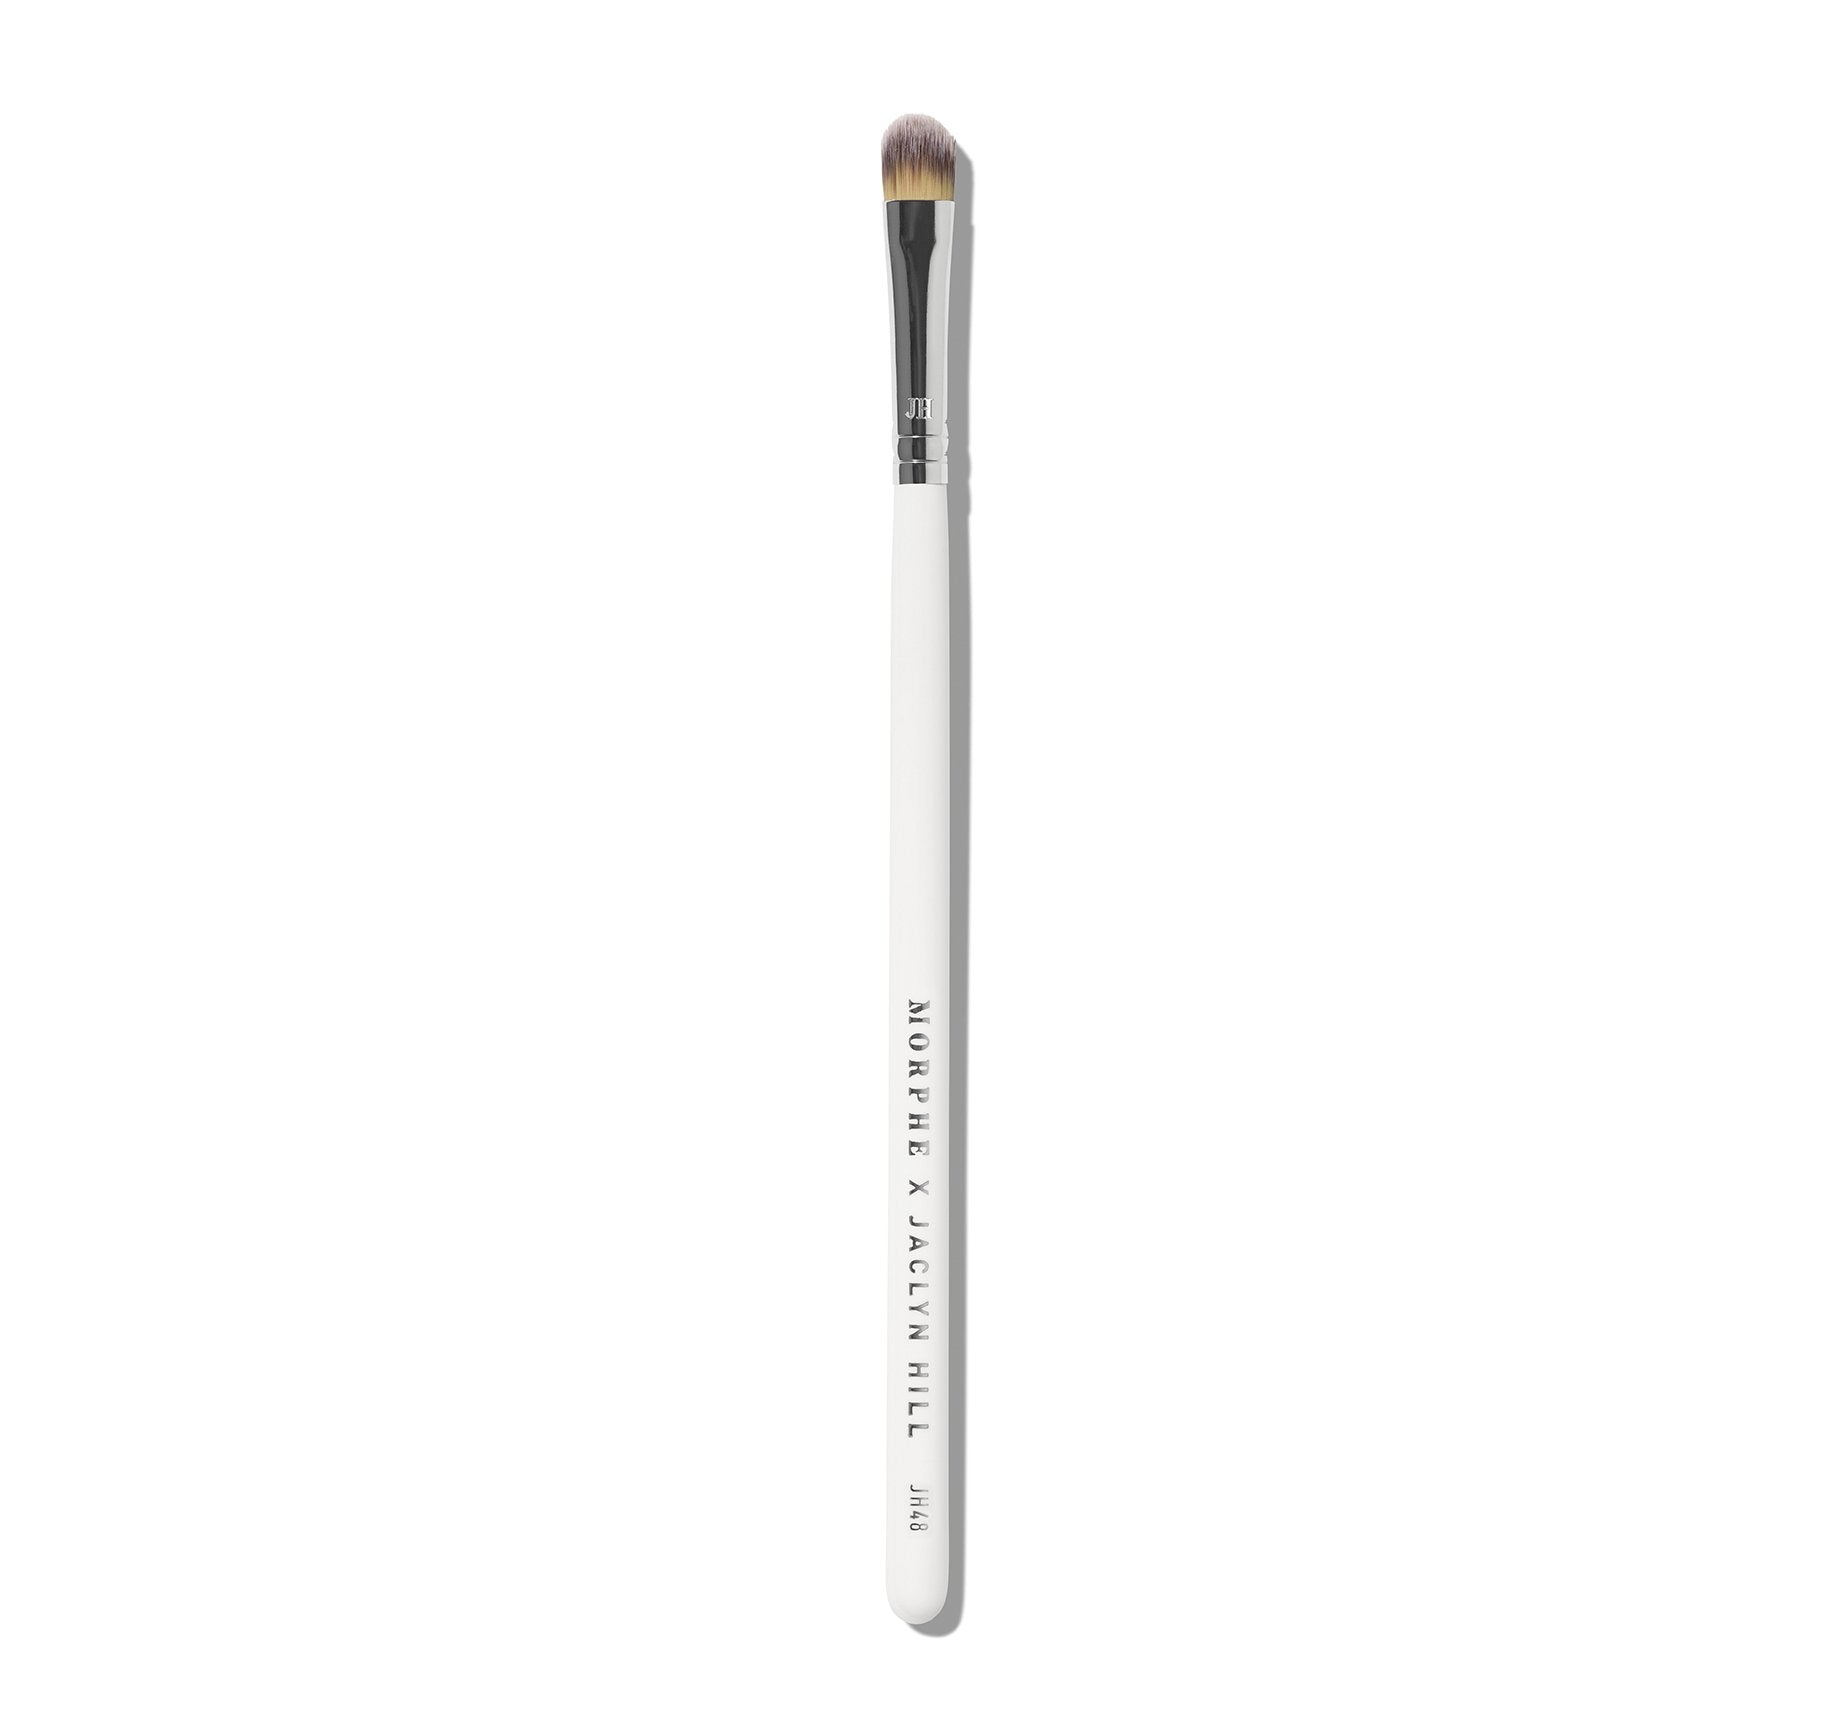 MORPHE X JACLYN HILL JH48 COVER STORY BRUSH, view larger image